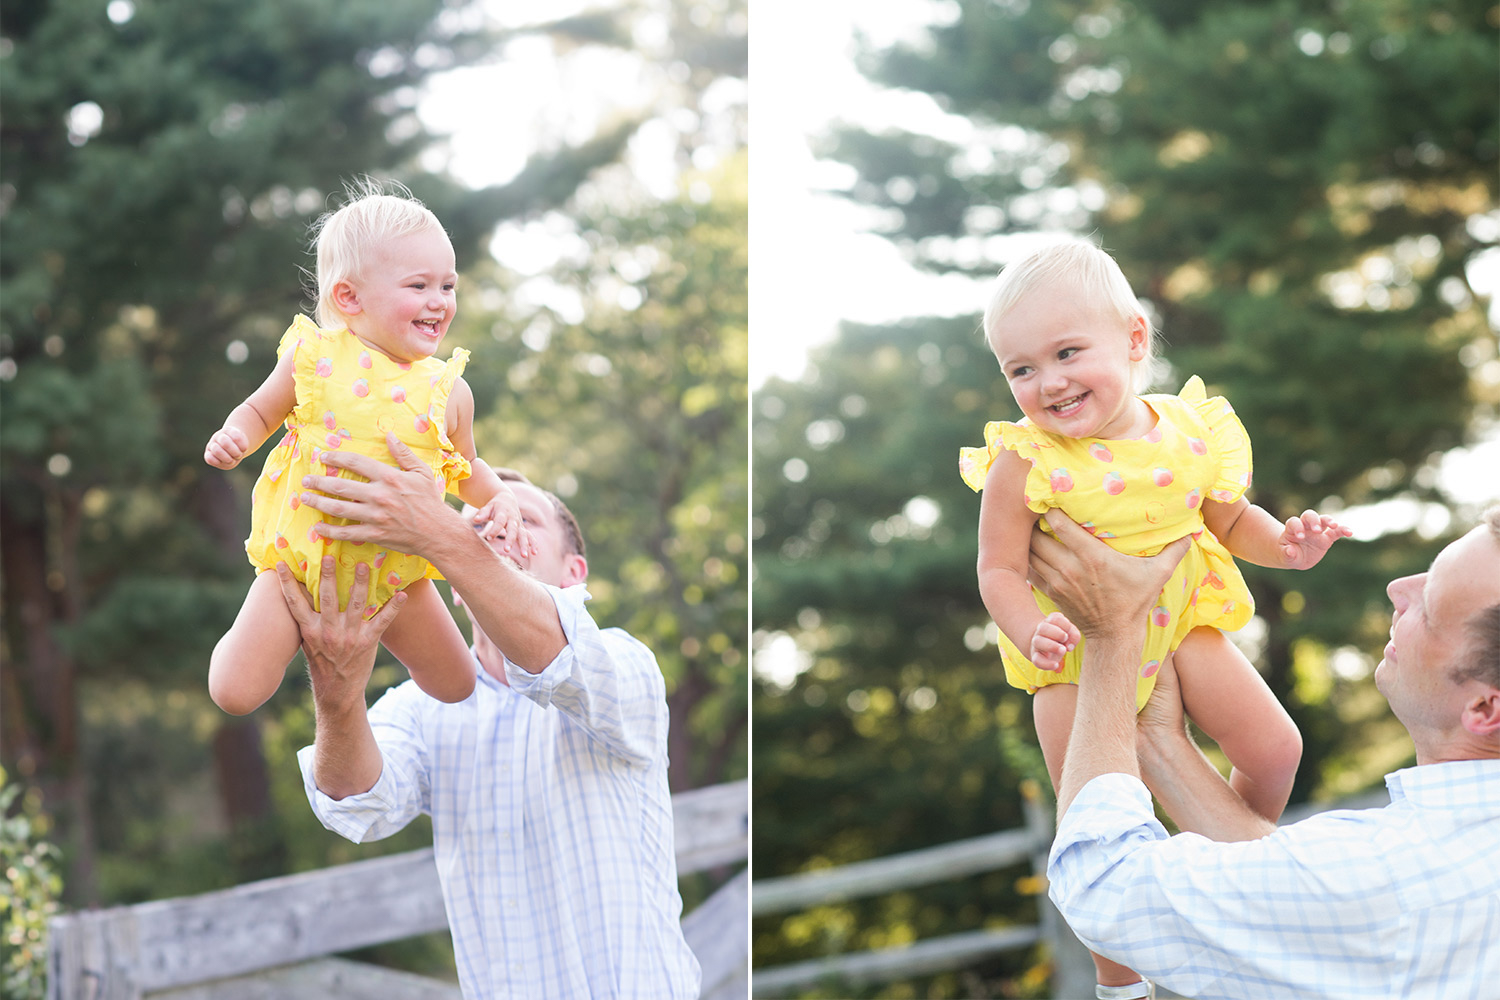 summer-orchard-family-photo-session-boston-4